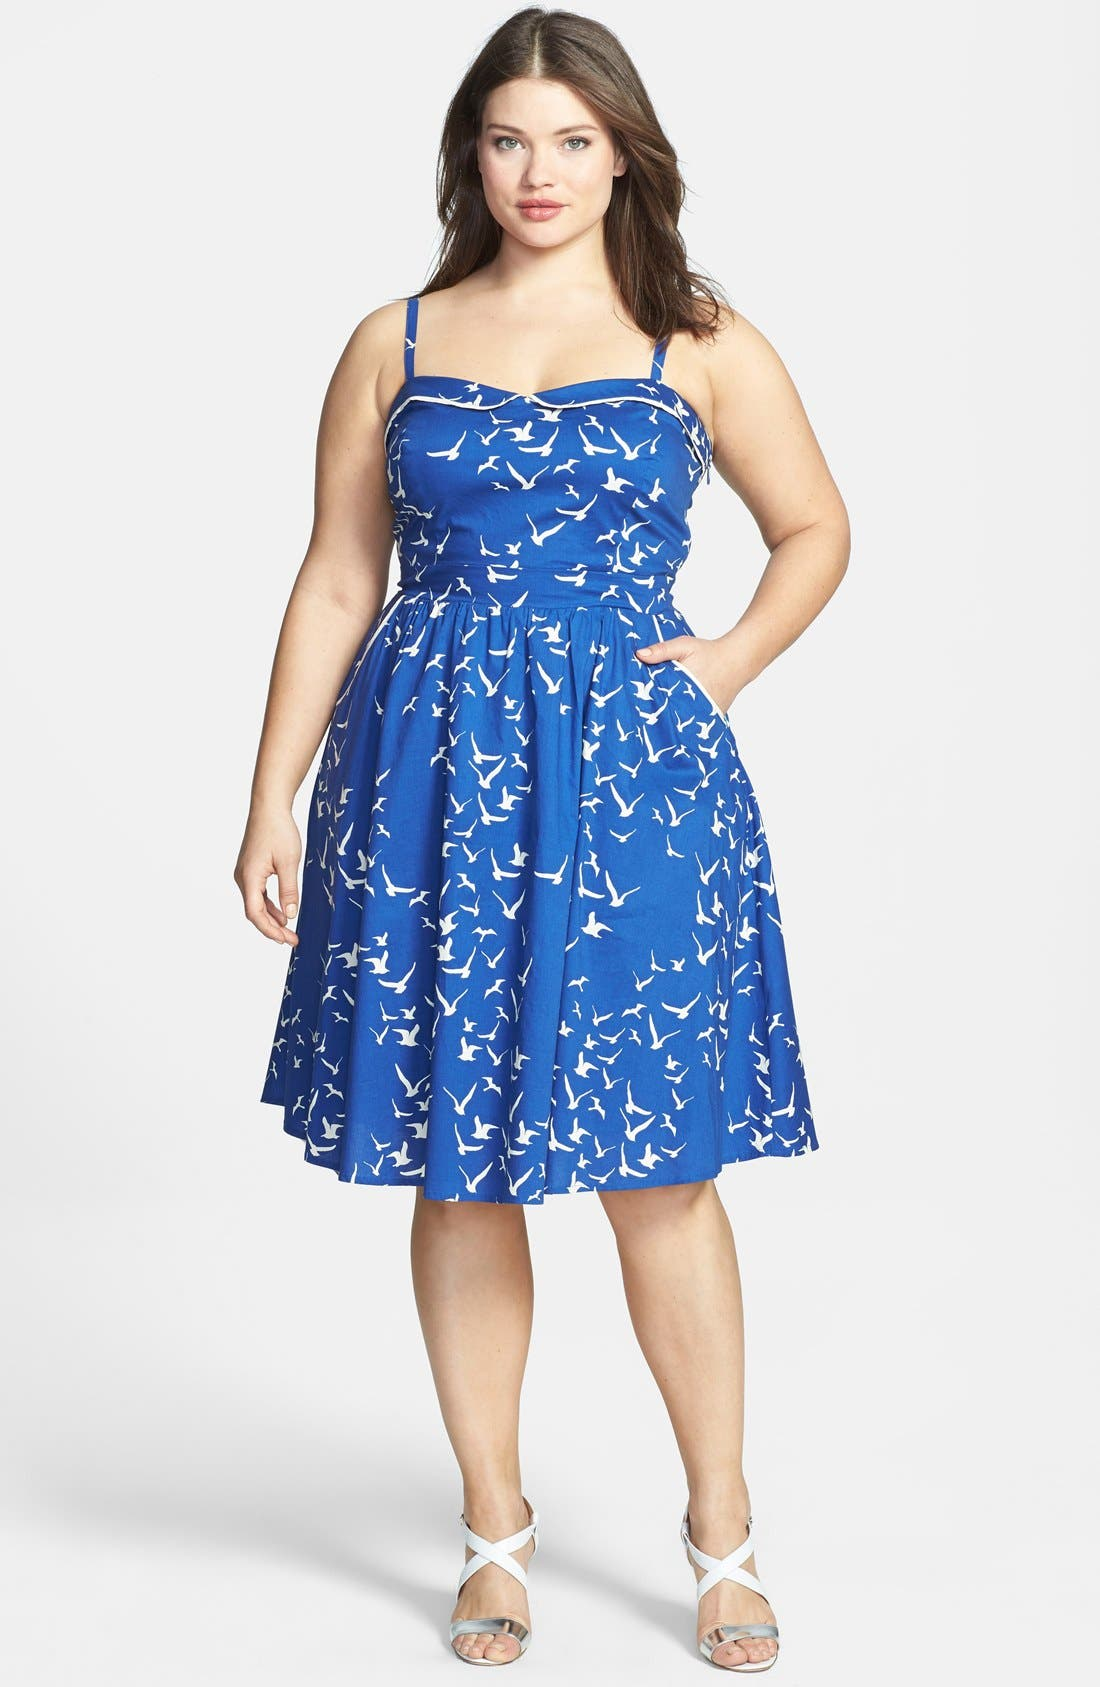 Alternate Image 1 Selected - City Chic 'Seaside' Fit & Flare Dress (Plus Size)